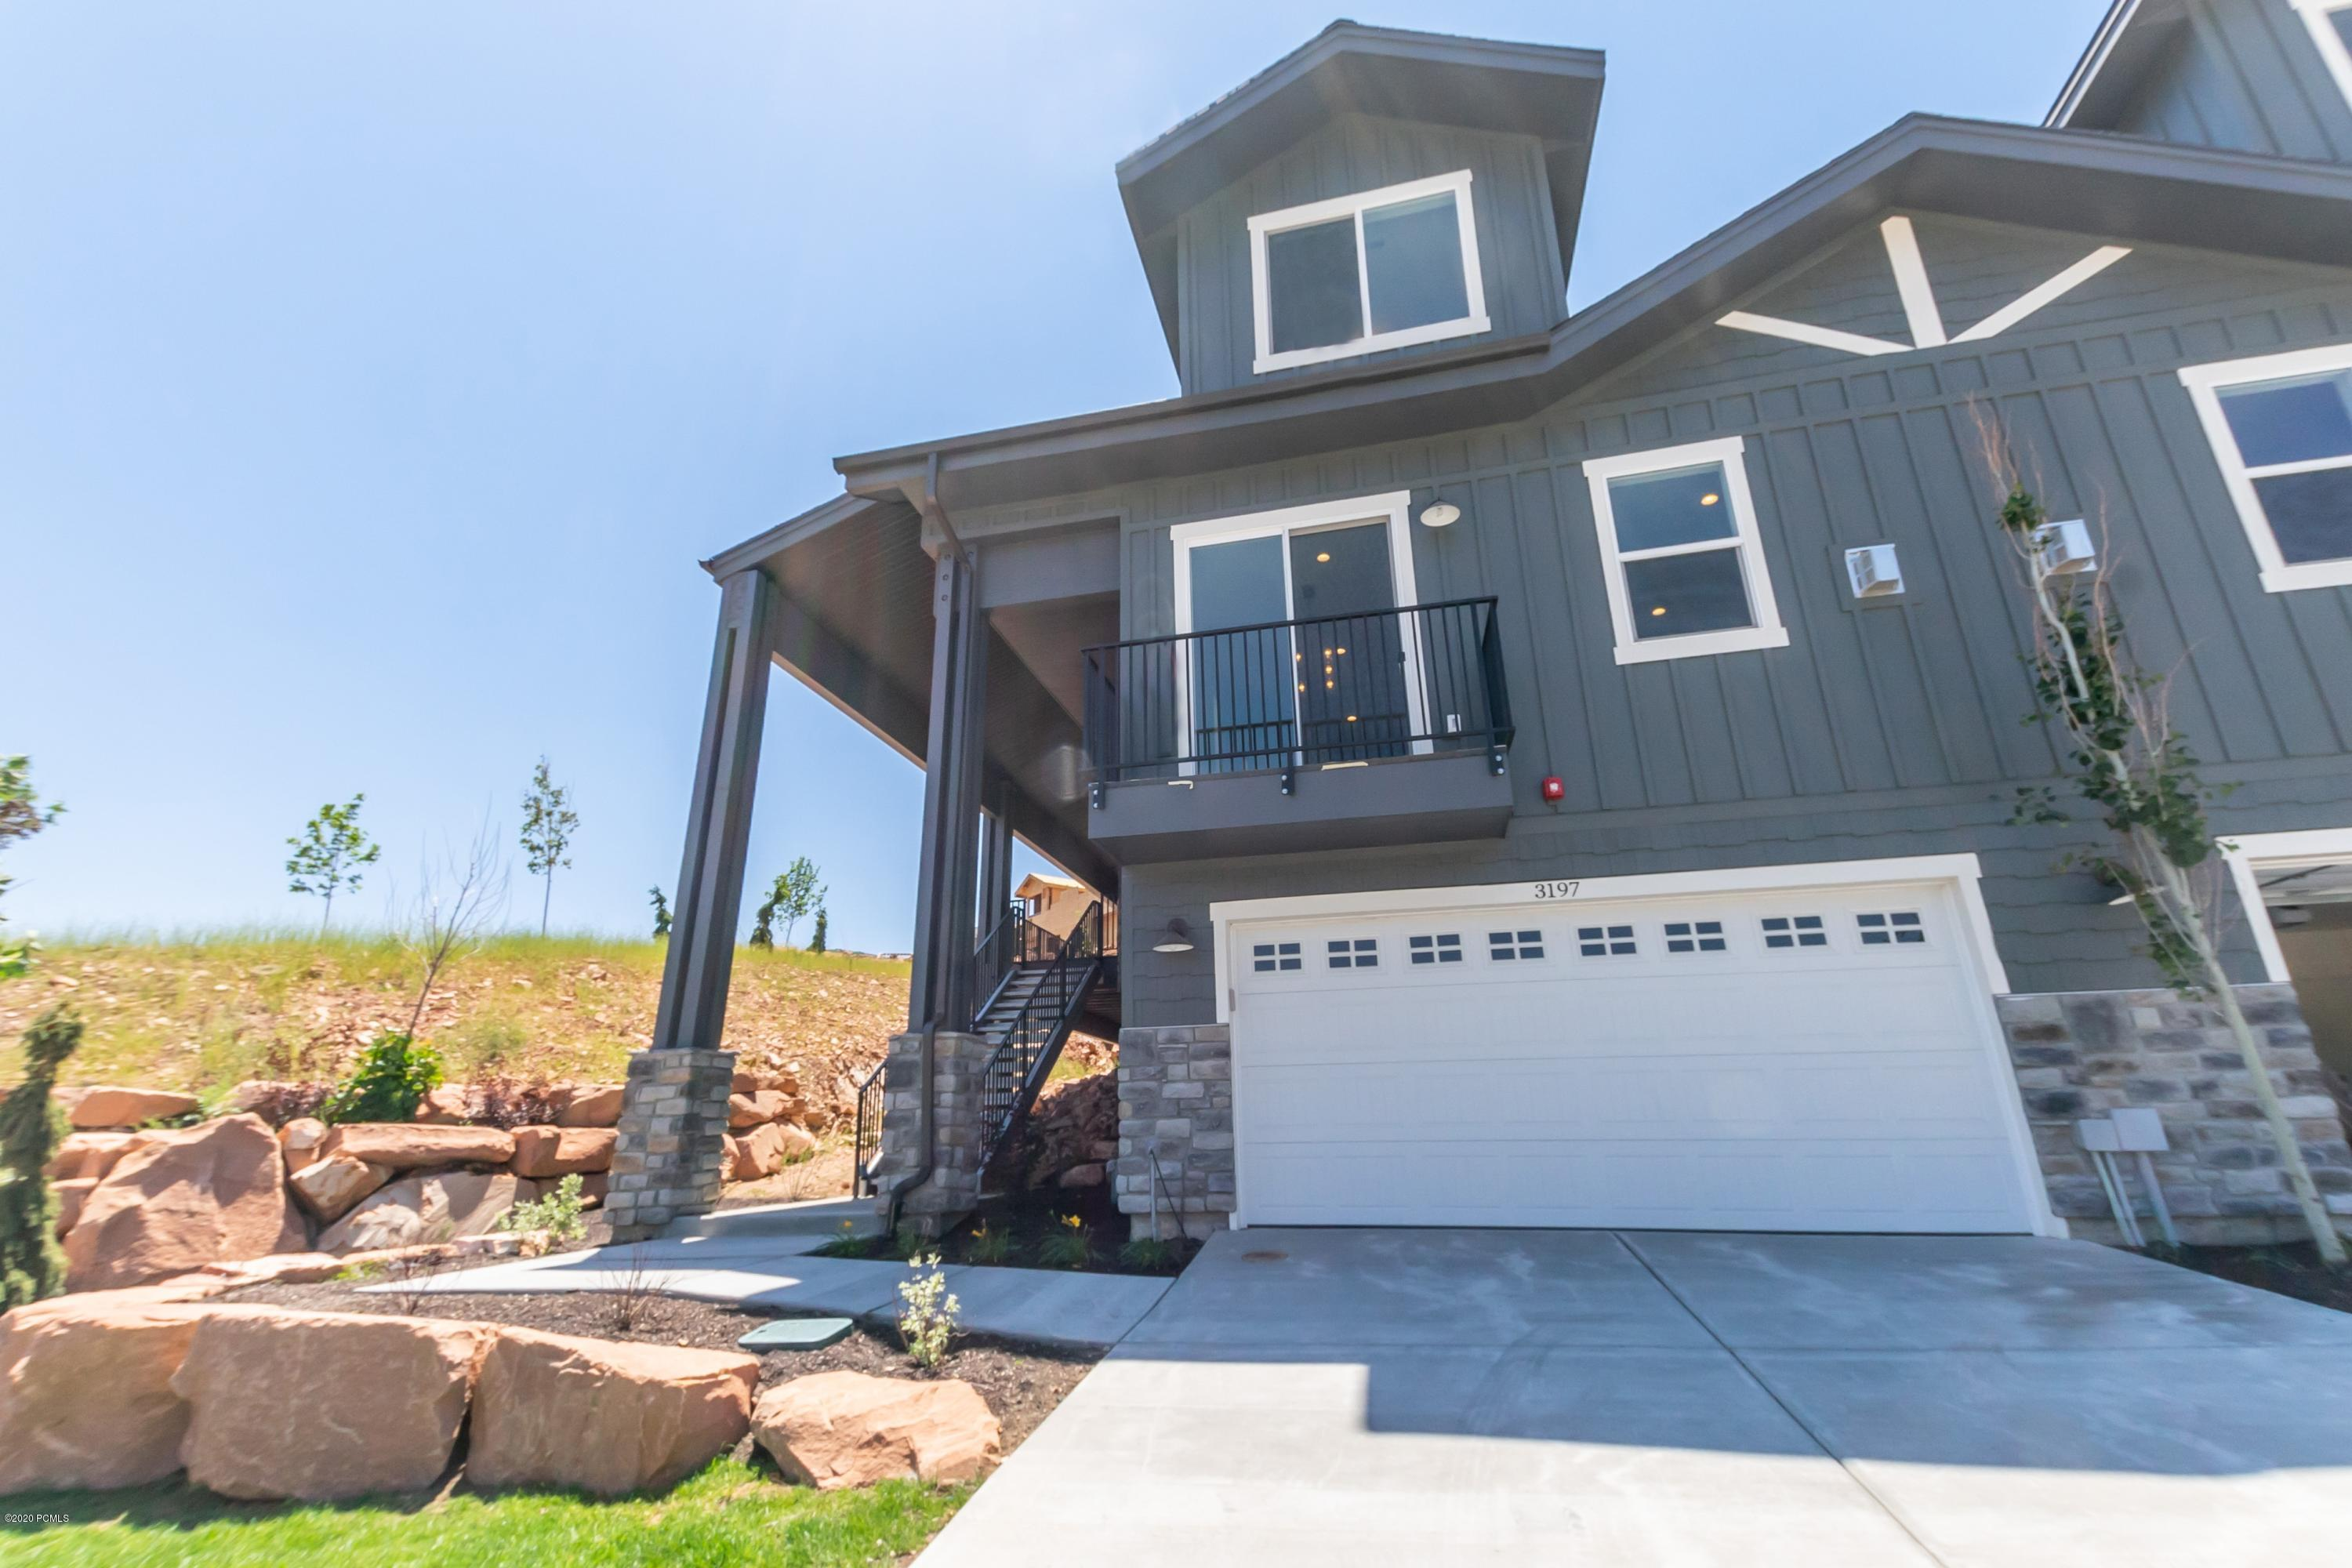 3379 Santa Fe Road, Park City, Utah 84098, 3 Bedrooms Bedrooms, ,3 BathroomsBathrooms,Condominium,For Sale,Santa Fe,12003568